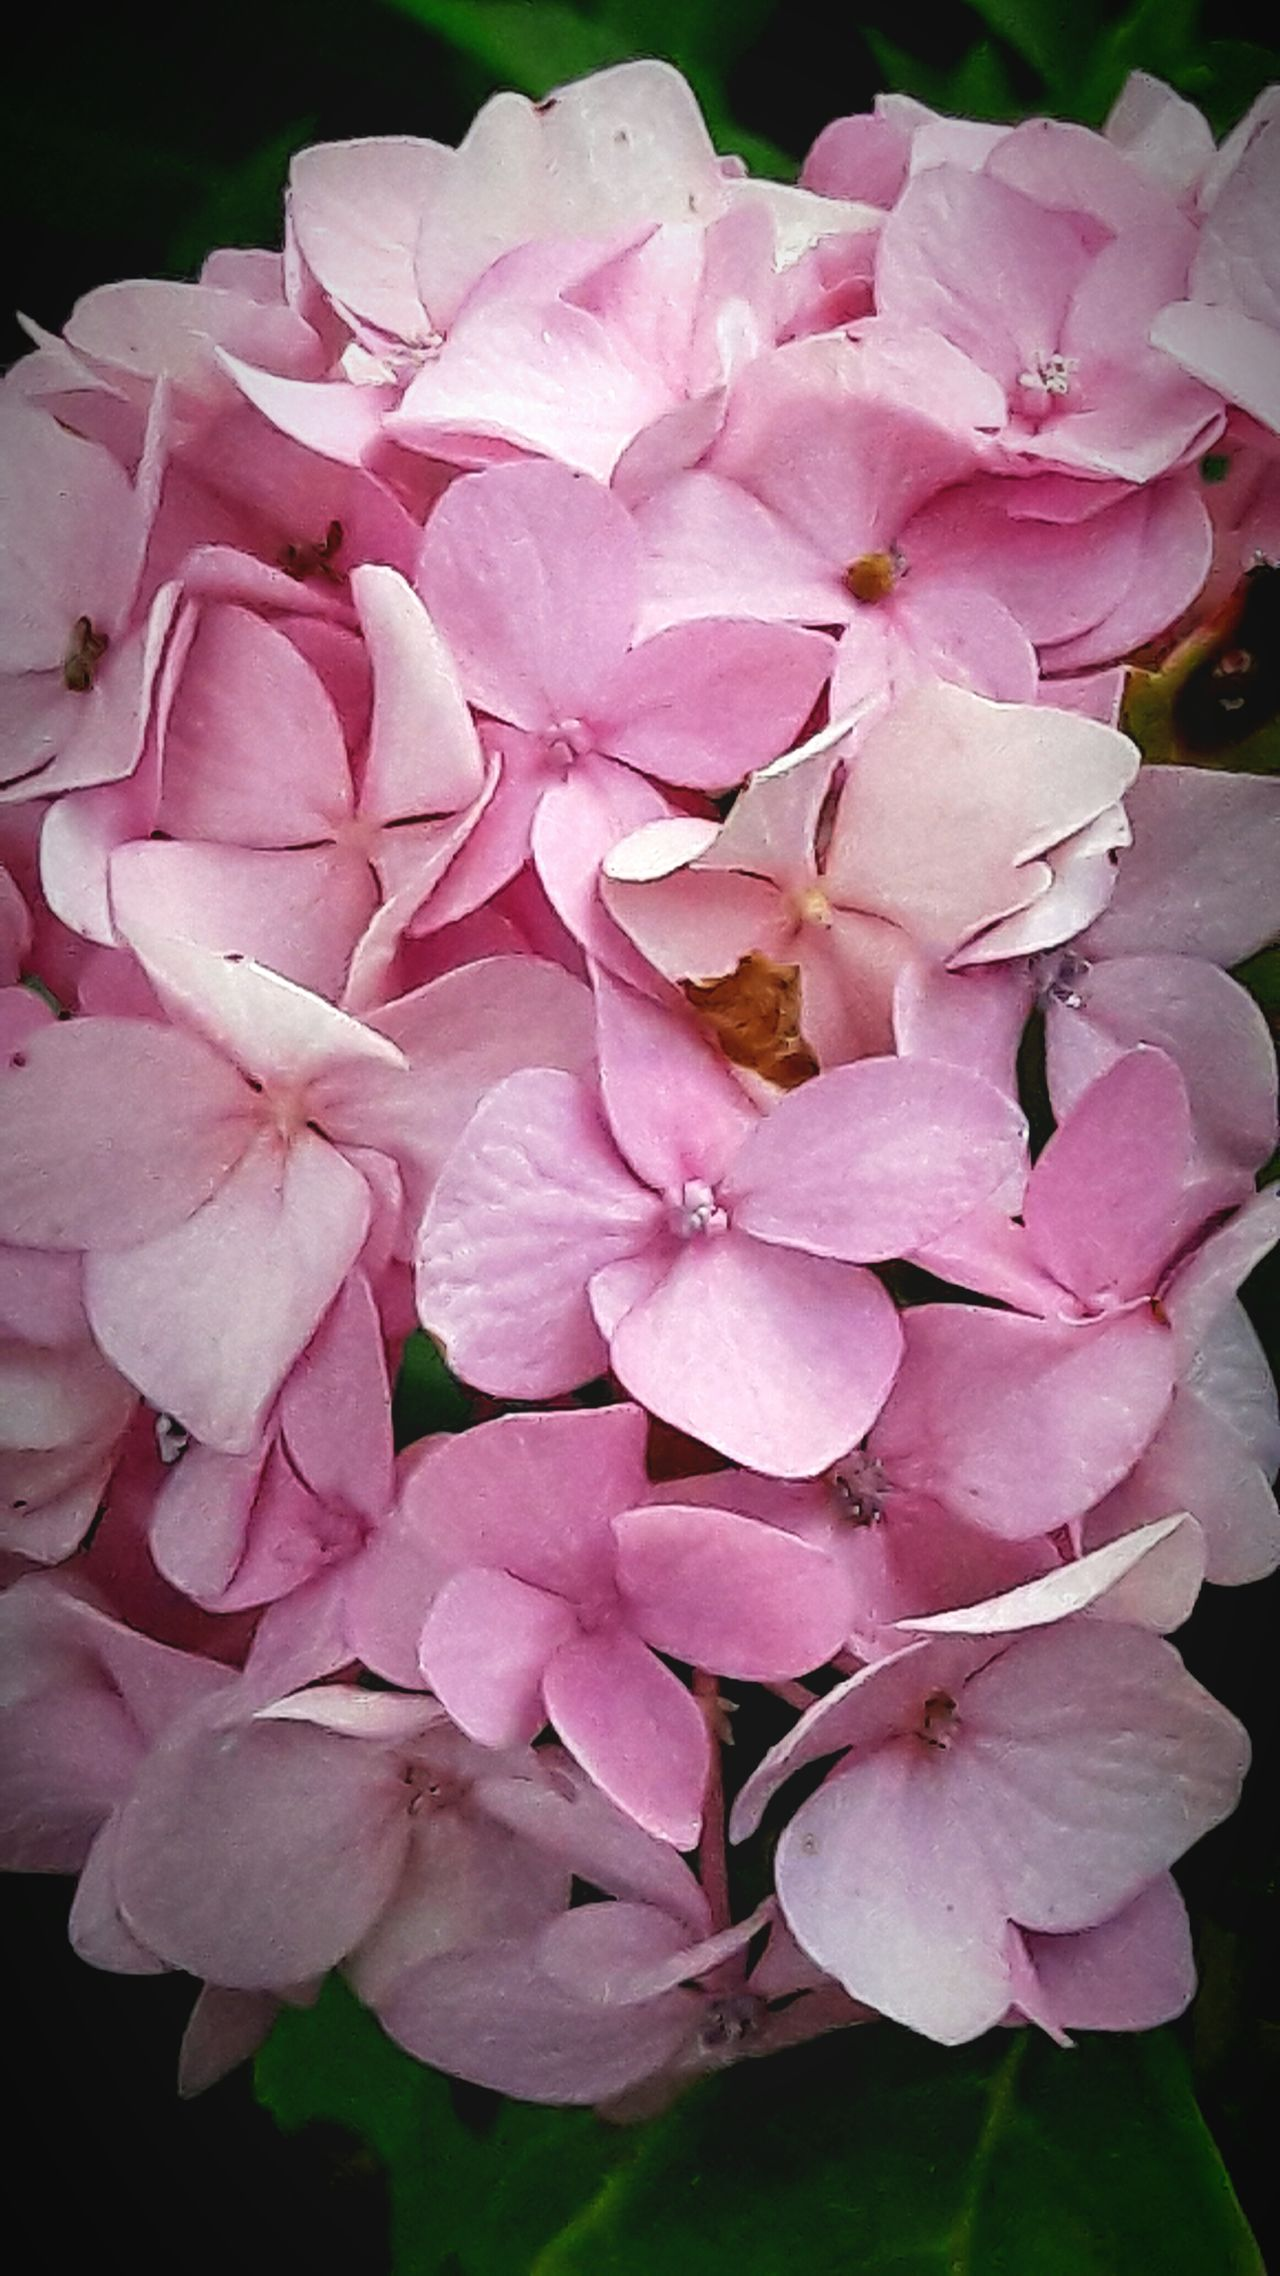 Love hydrangeas Pink Color Flower Petal Nature Beauty In Nature No People Plant Flower Head Close-up Fragility Outdoors Day In My Neighborhood EyeEm Nature Lover Popular Photos Freshness